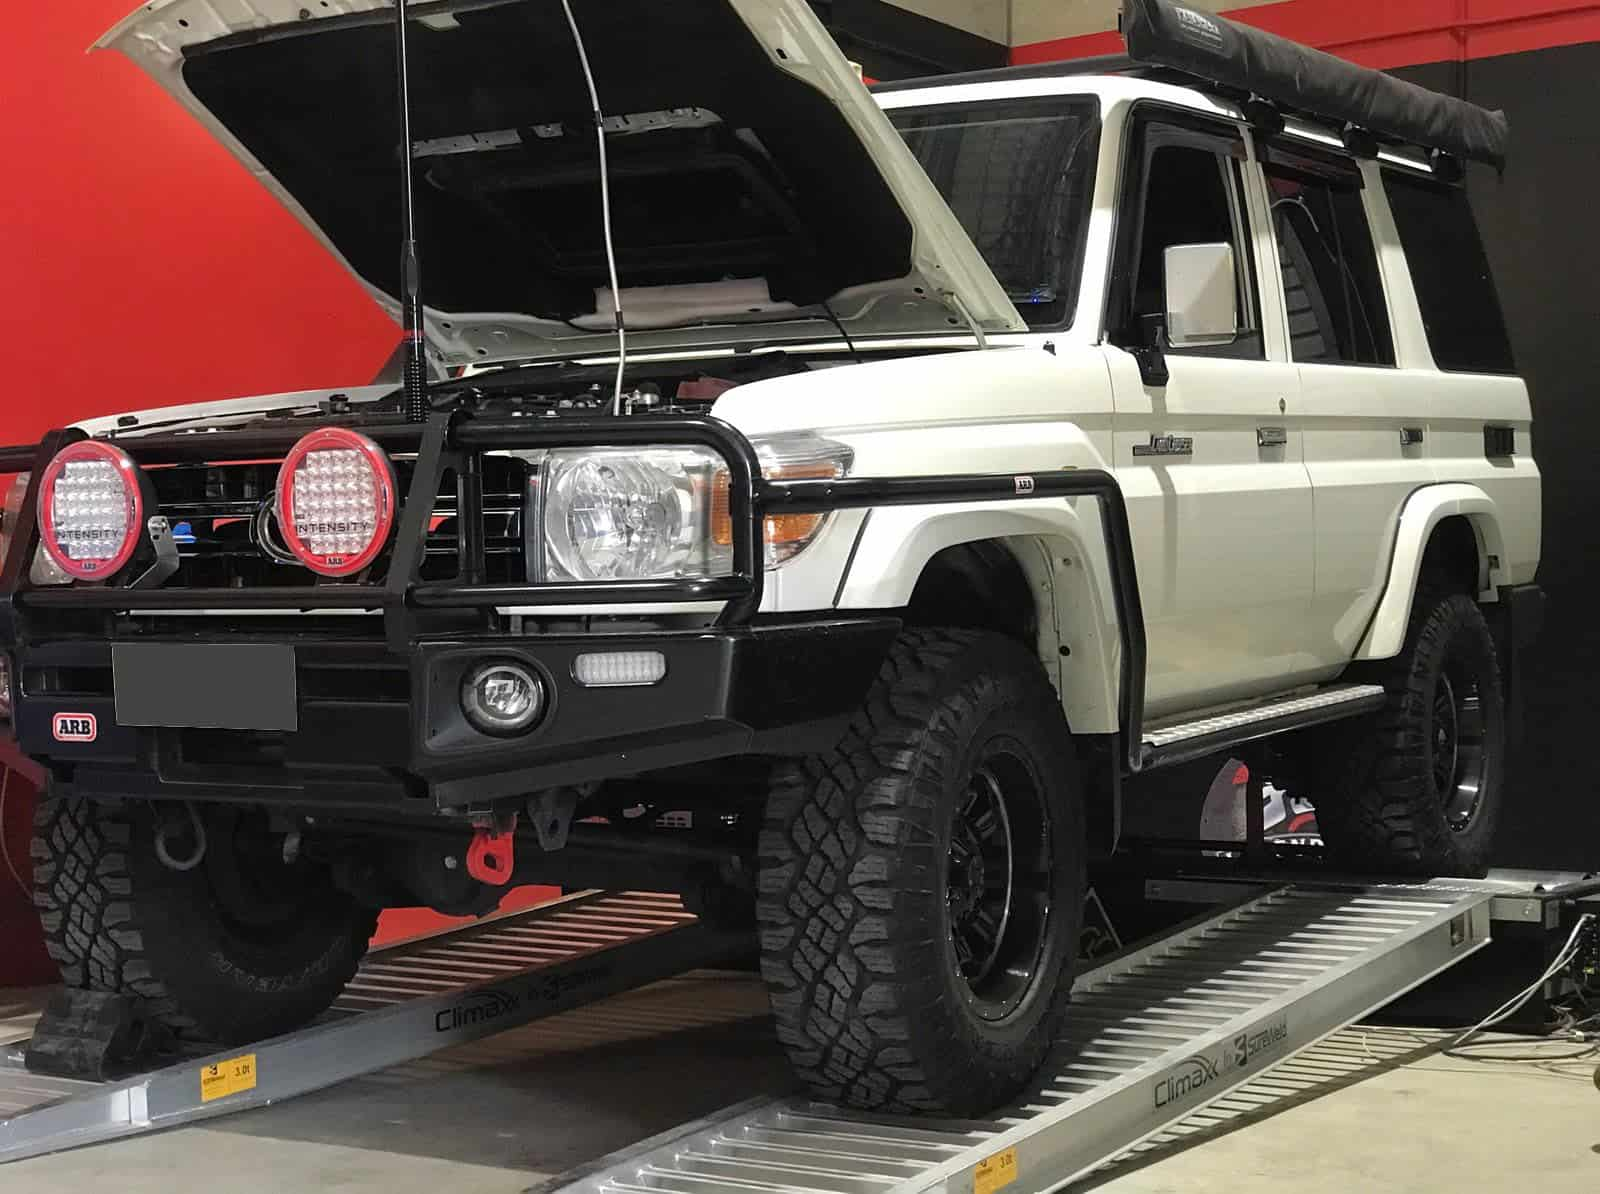 A 4WD Landcruiser on ramps ready for ECU Remapping | 4x4 Obsession